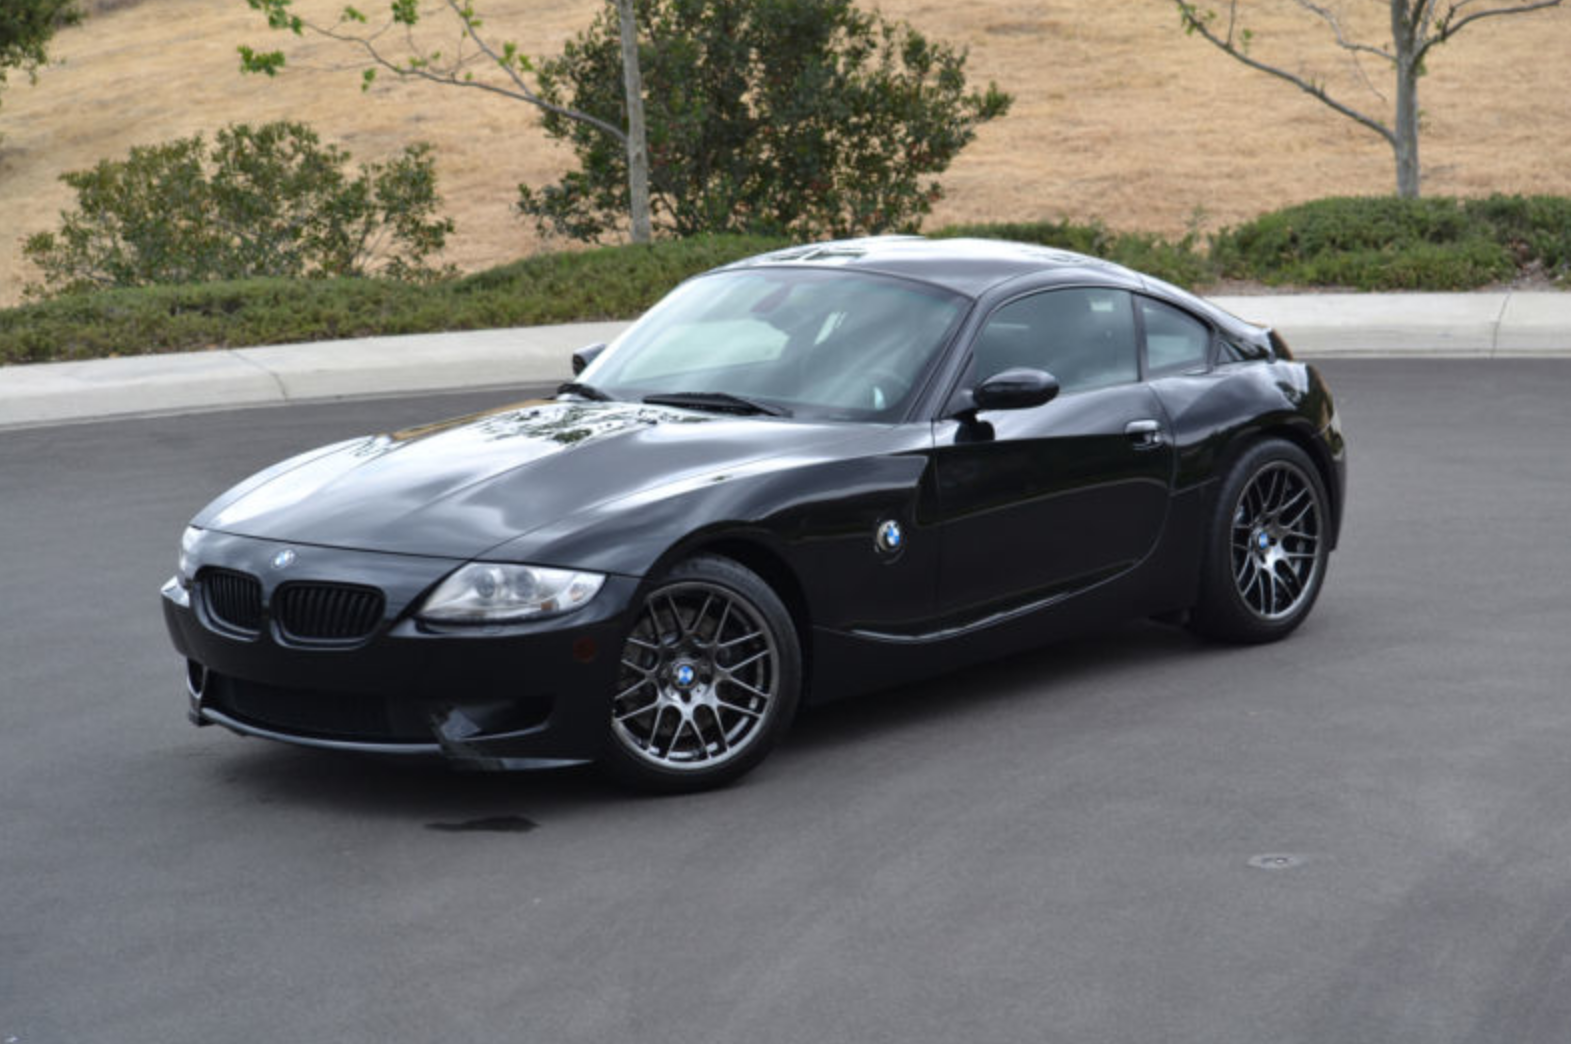 bmw z4 2013 review amazing pictures and images look at the car. Black Bedroom Furniture Sets. Home Design Ideas